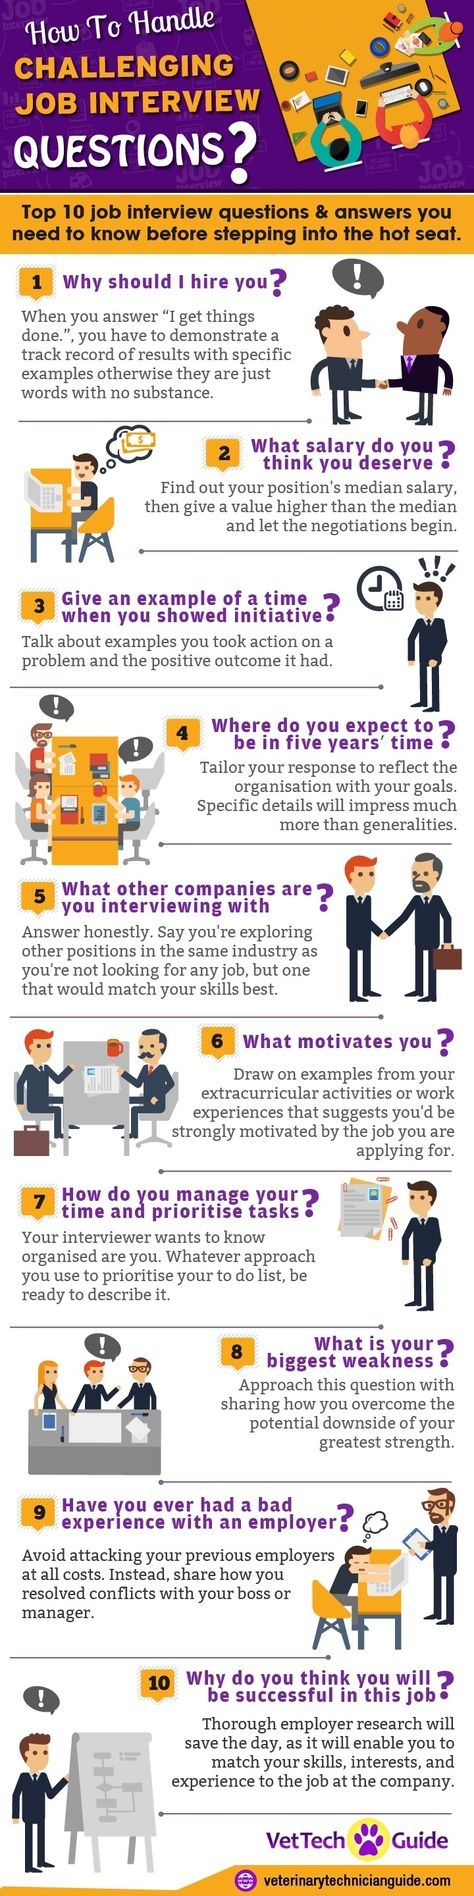 Preparing for an interview? Here are 10 of the top interview questions and how to answer them.